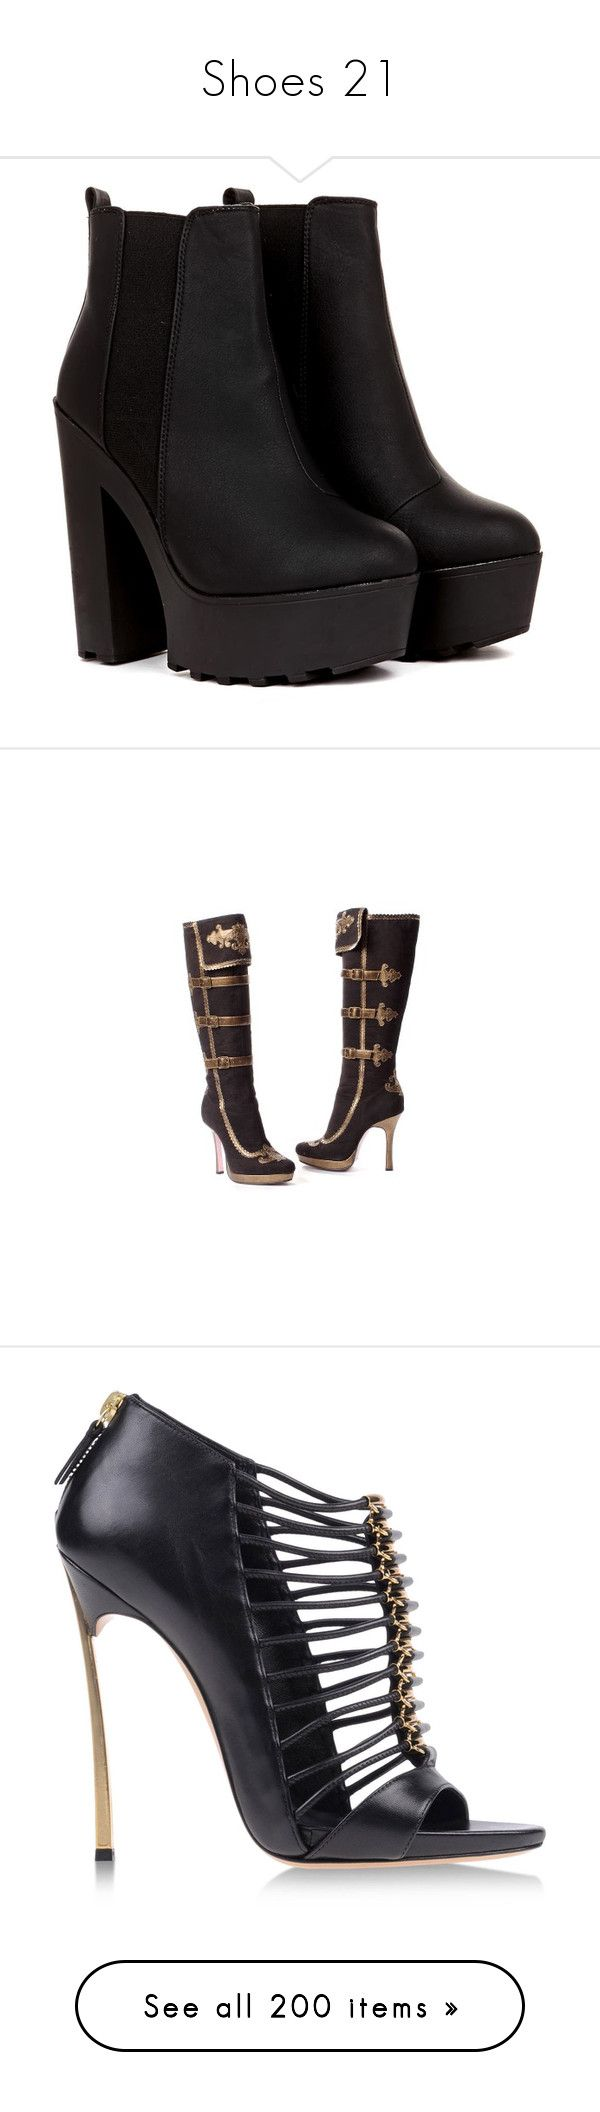 """""""Shoes 21"""" by no-me-juzgues ❤ liked on Polyvore featuring shoes, boots, ankle booties, heels, botas, black, short black boots, heeled booties, black heeled booties and black heeled boots"""